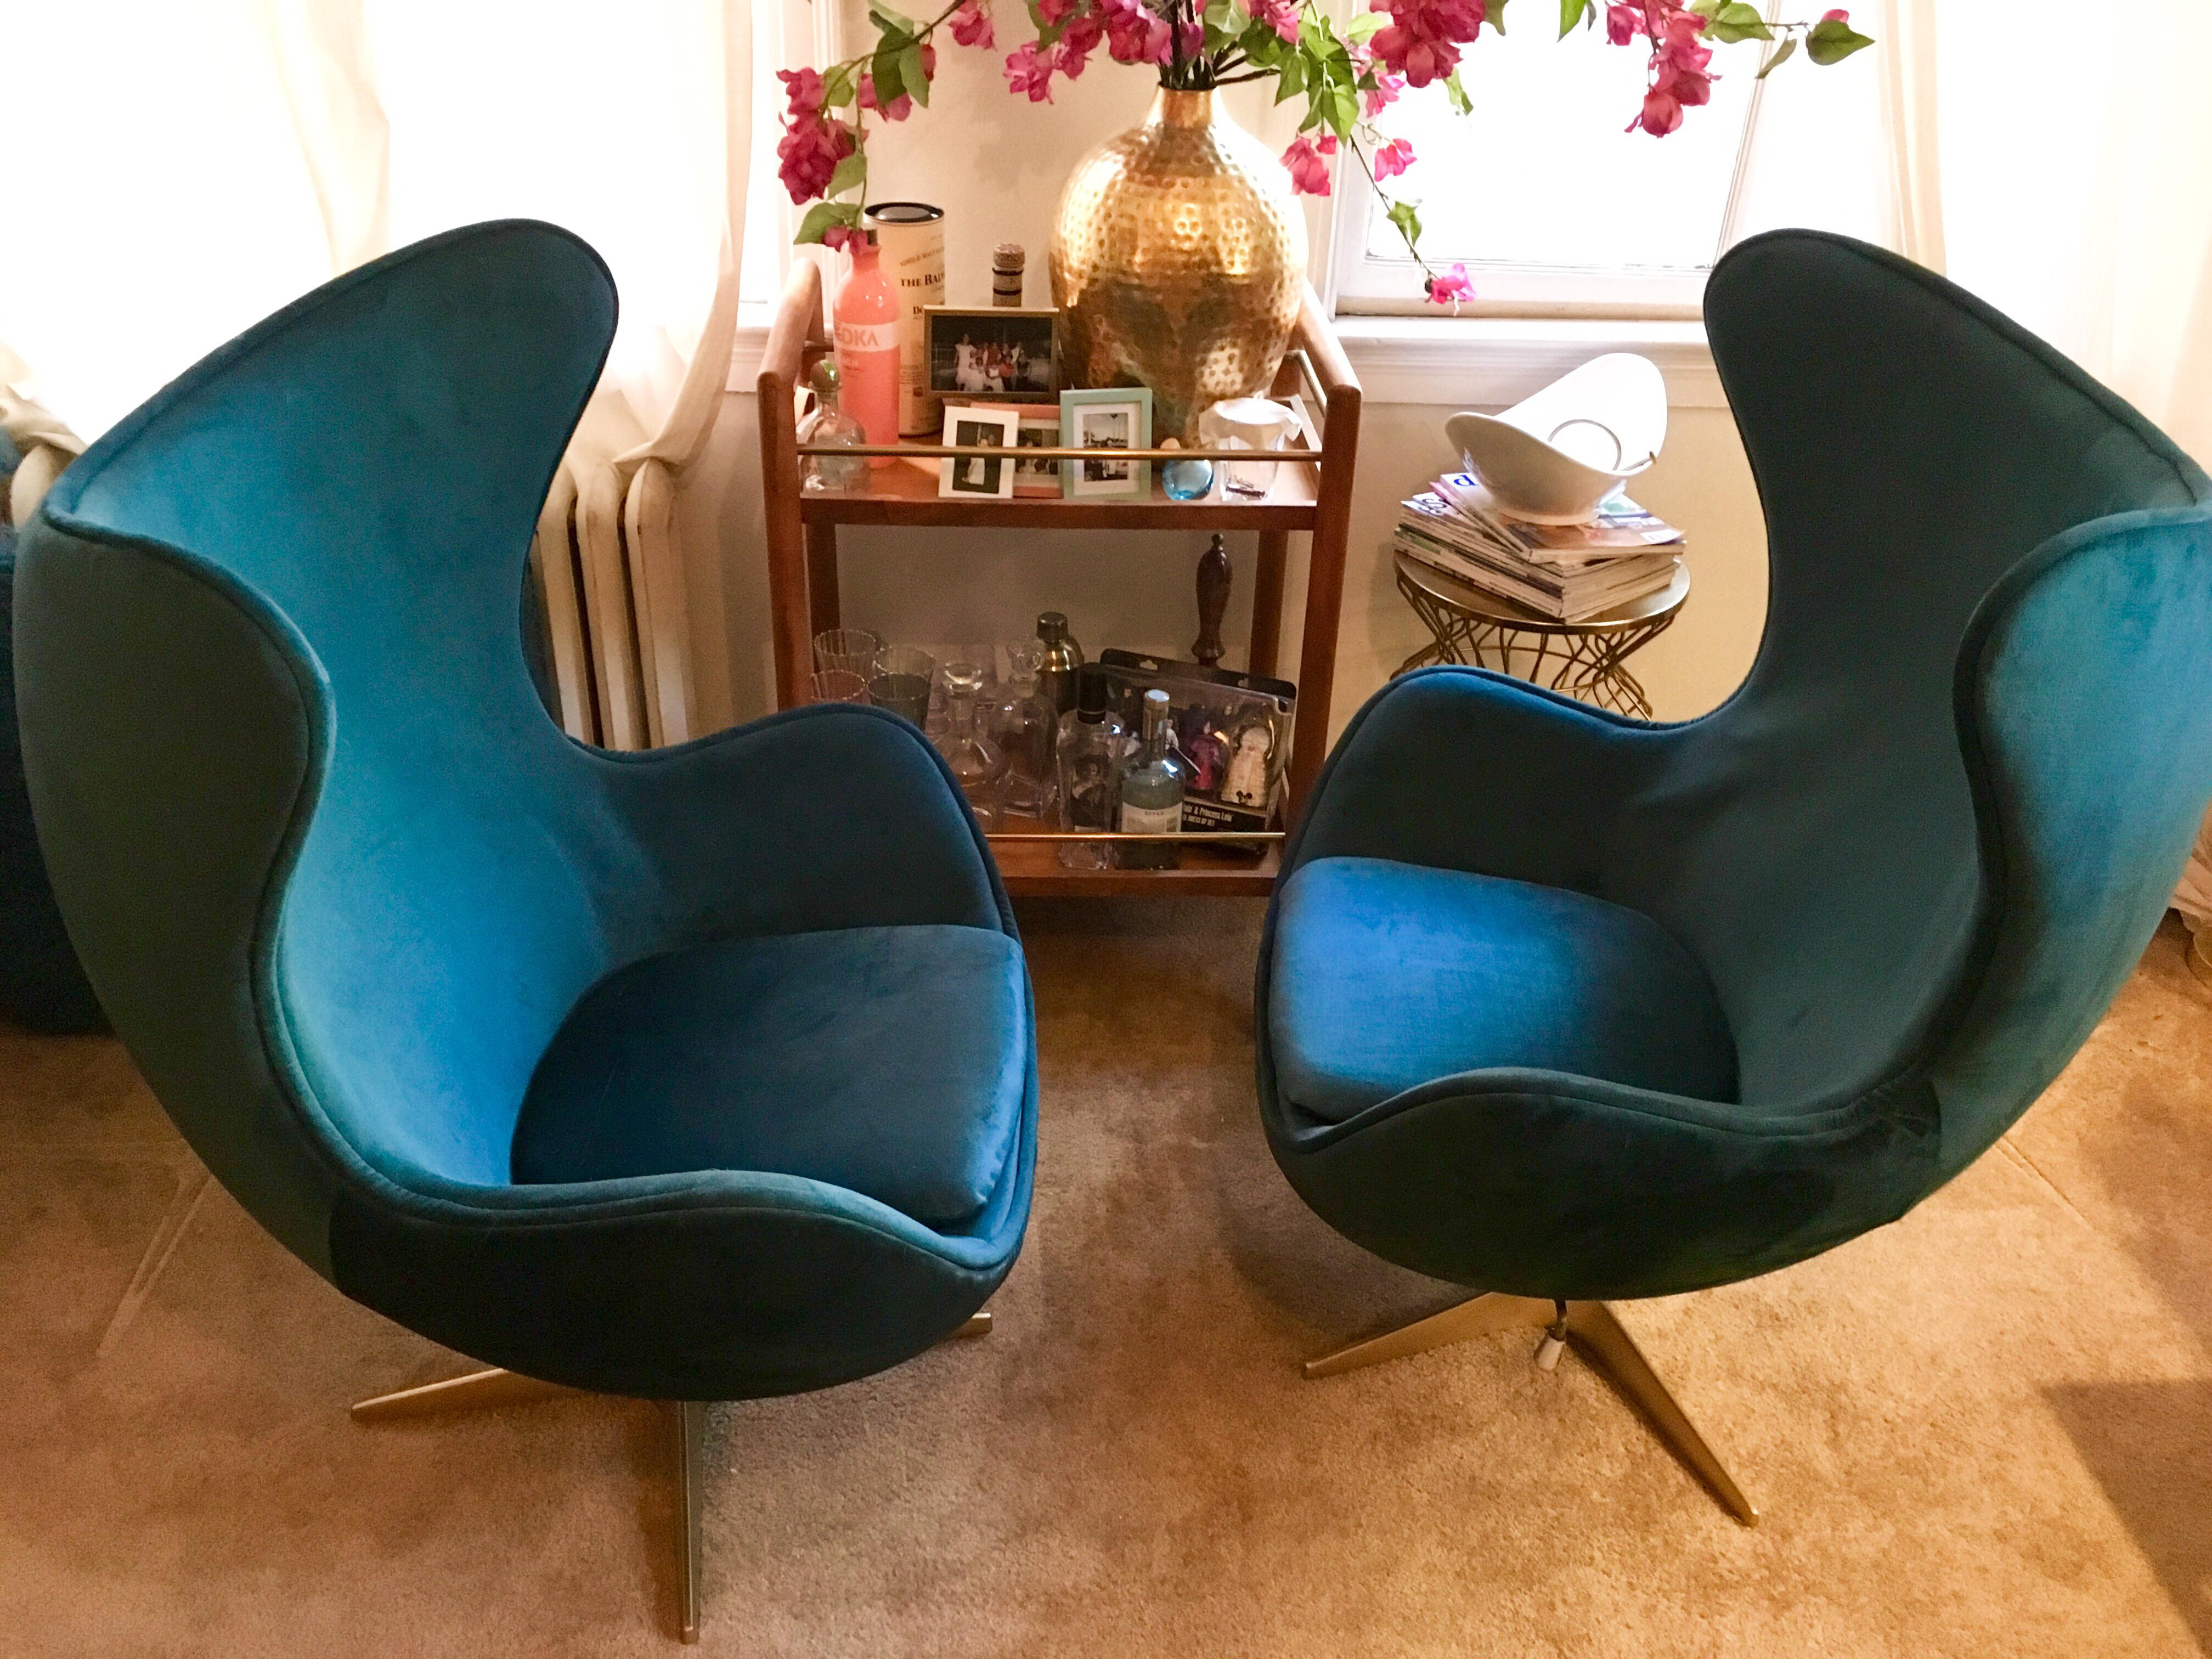 What Makes These Chairs So Special? The Beautiful, Rich Velvet Upholstery  Fabric And The